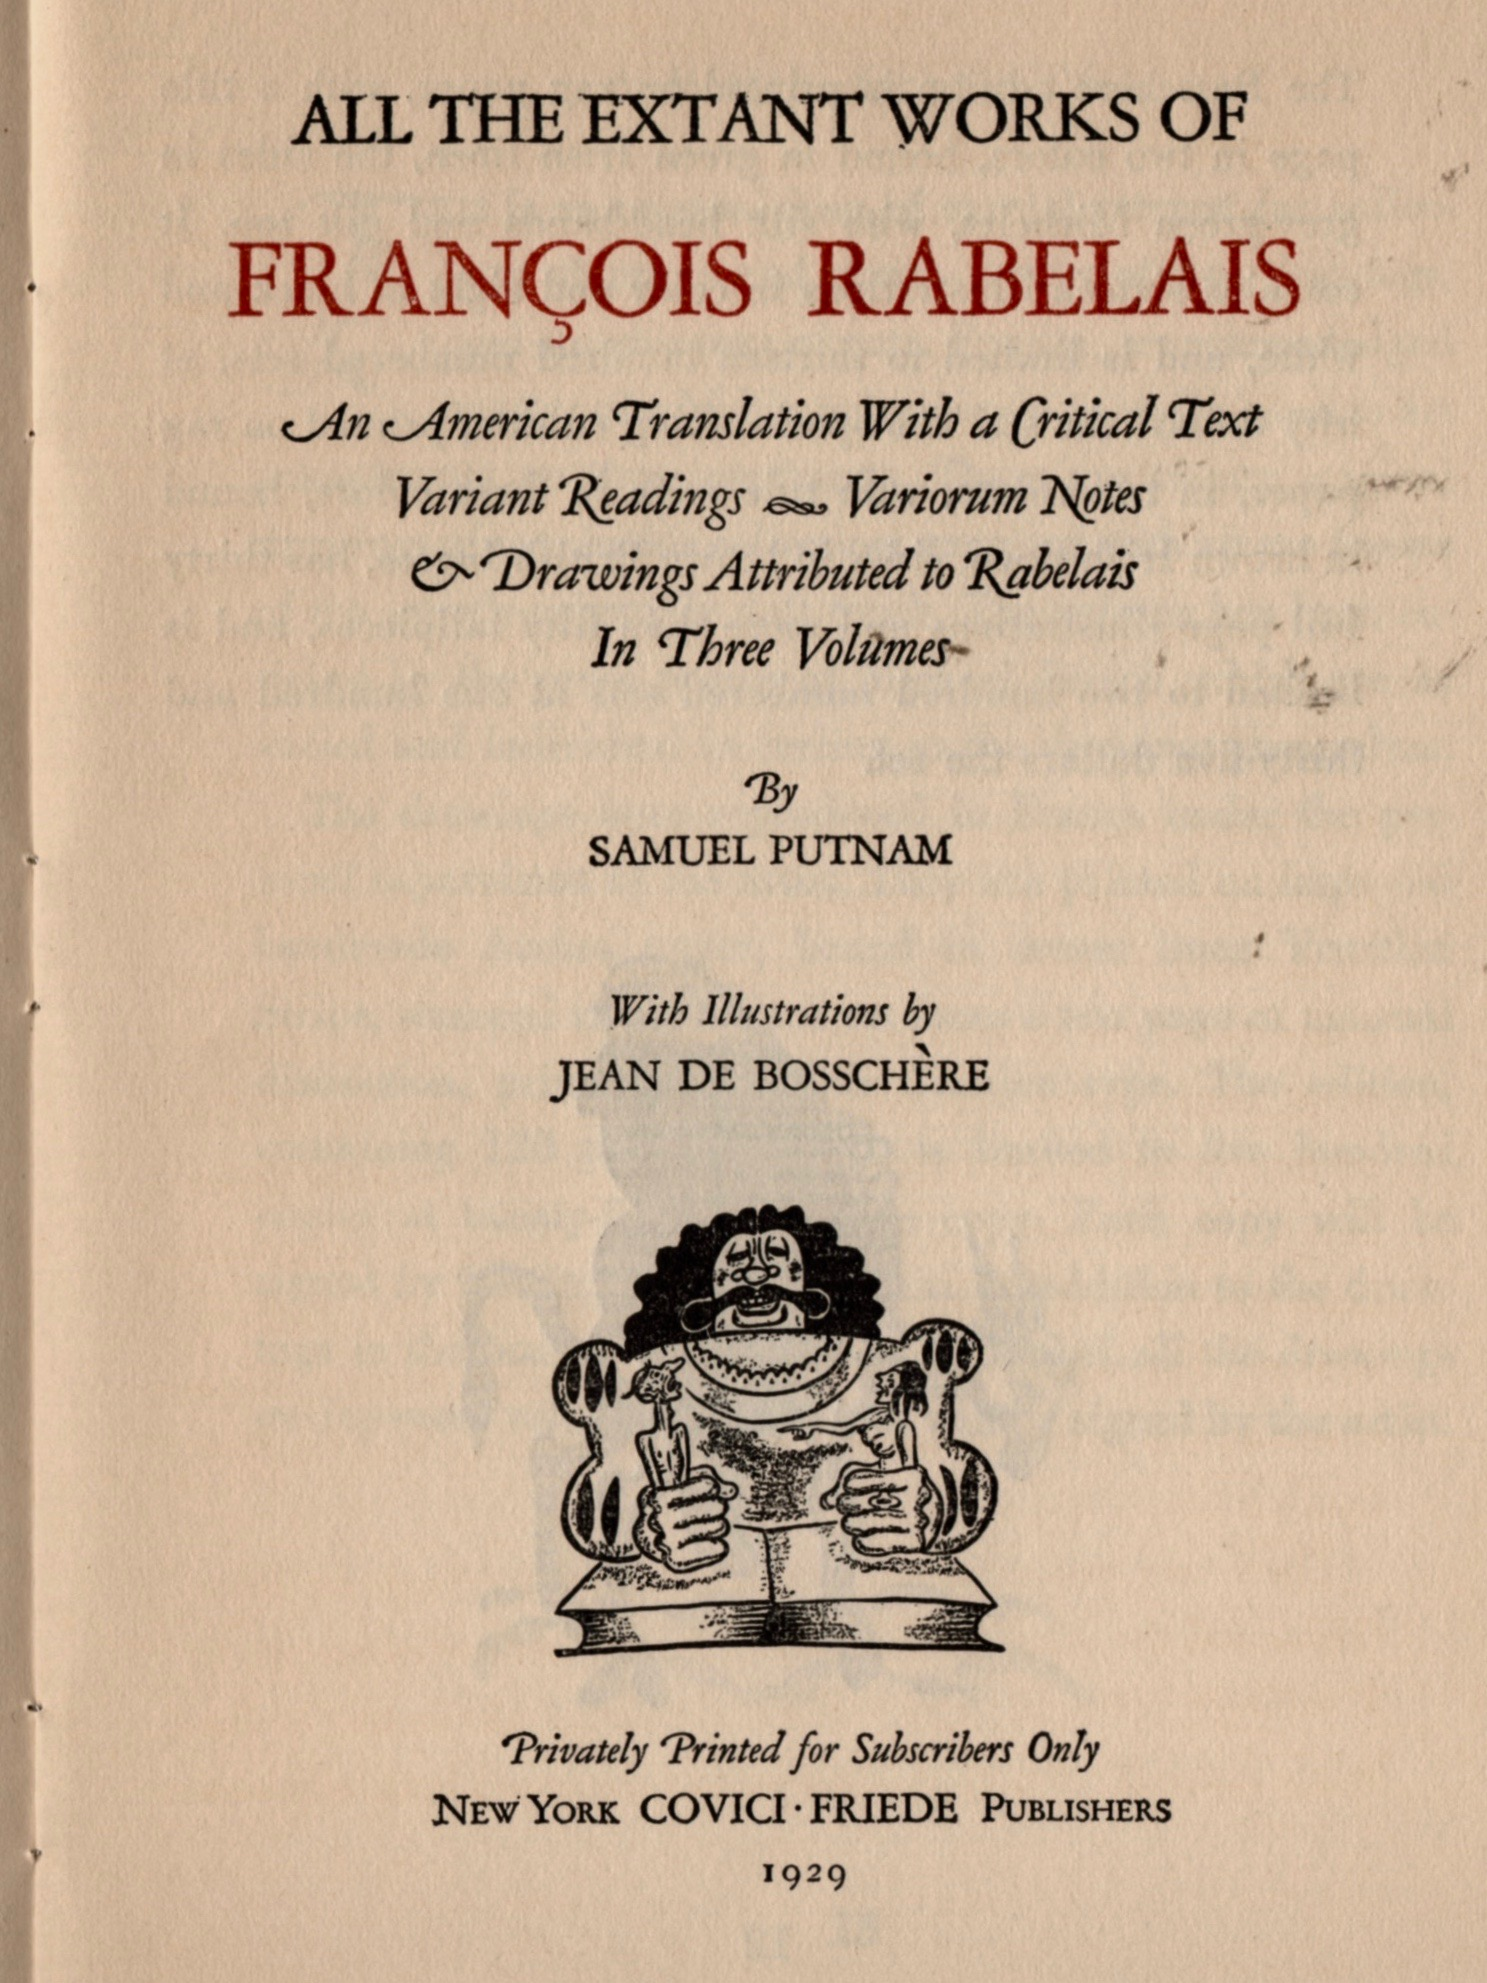 The handsome full-page reproduction of the Rabelais title page.